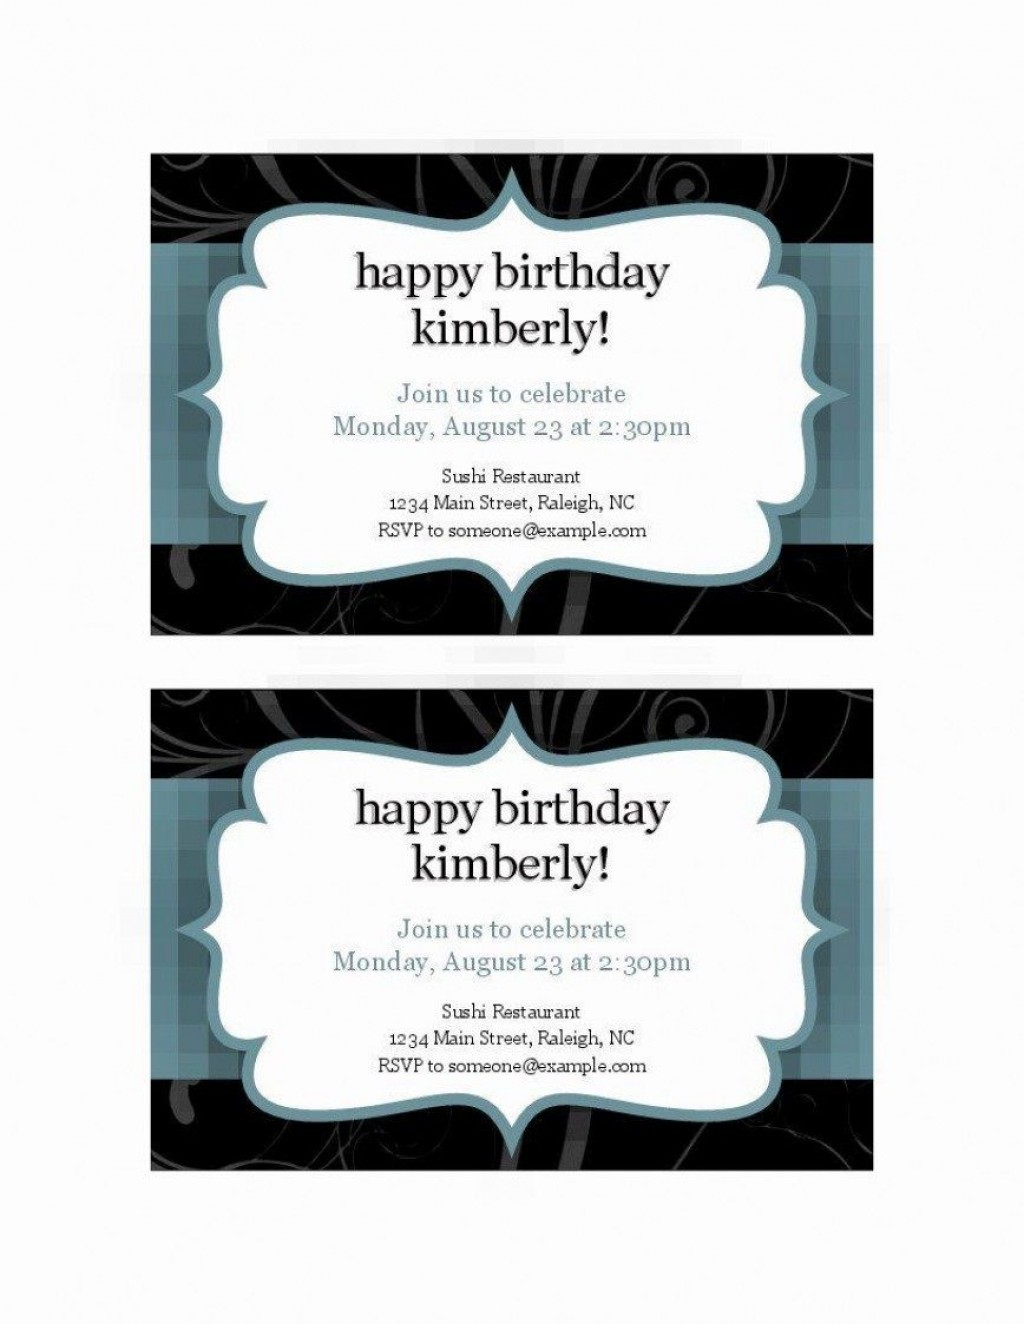 009 Excellent Microsoft Office Invitation Template Example  Templates Holiday Party PublisherLarge